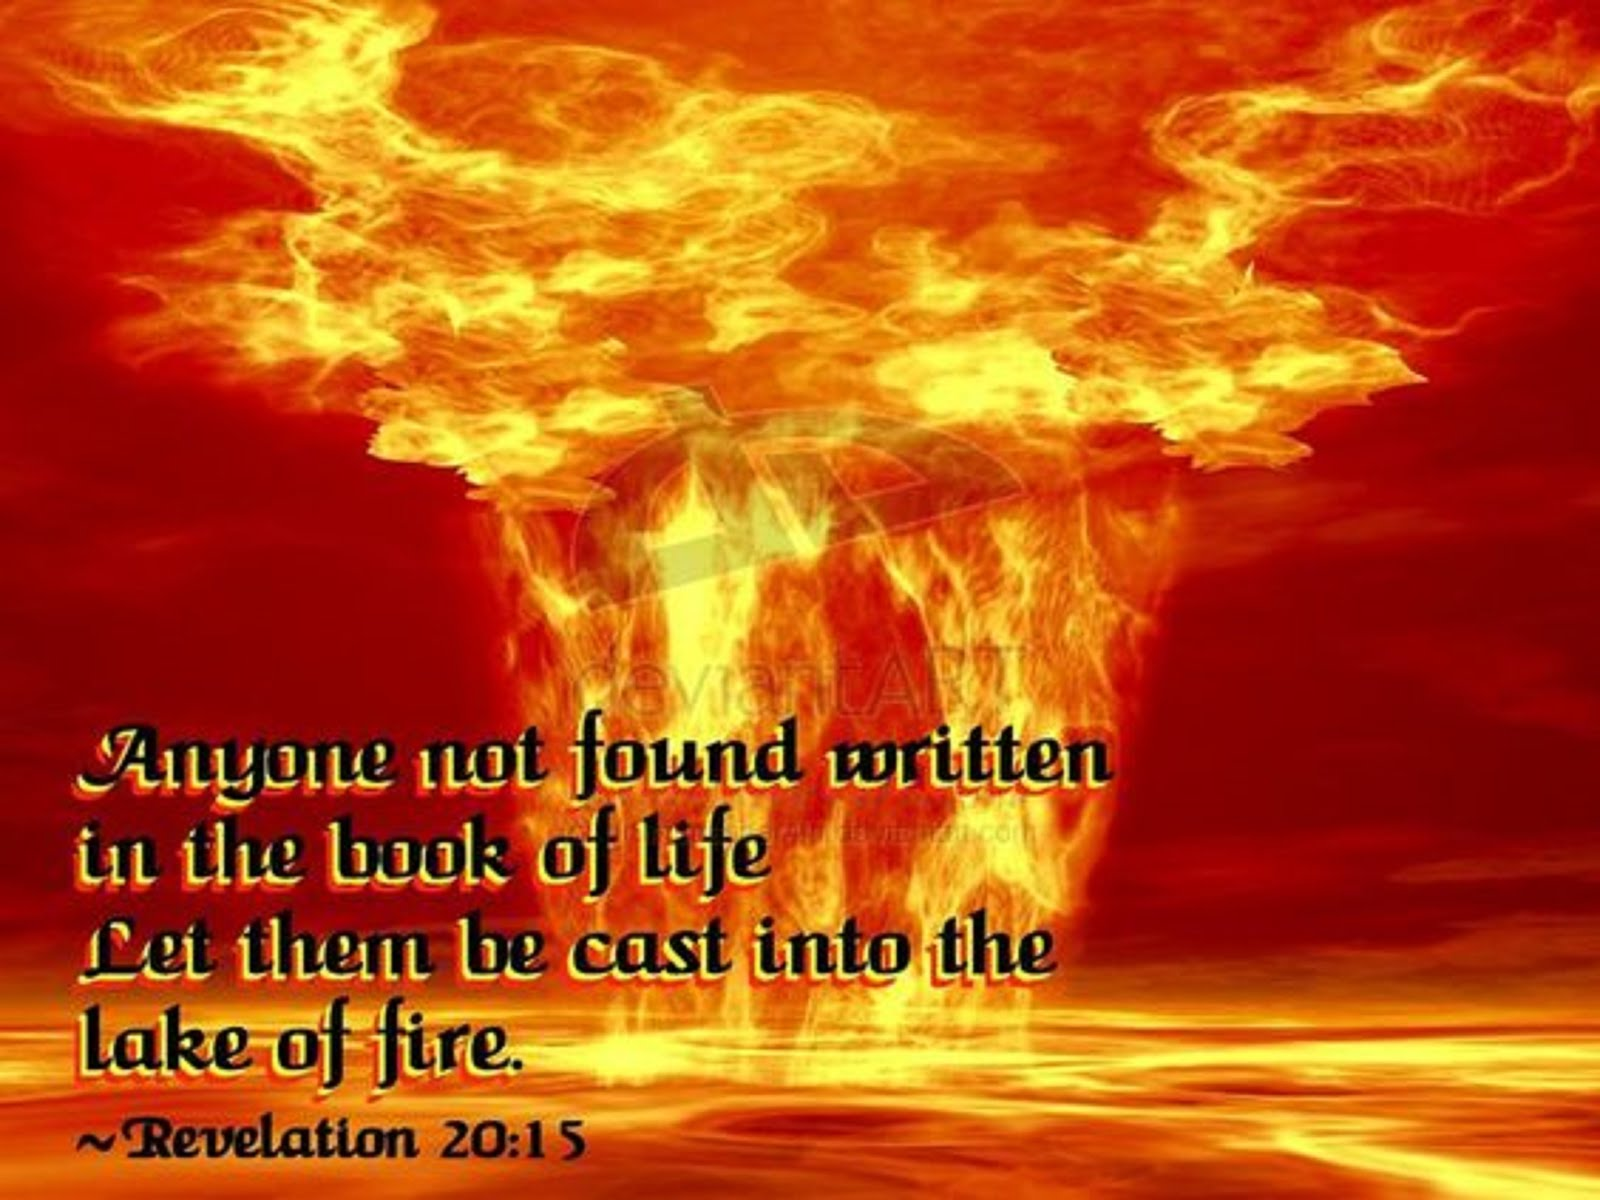 ANYONE NOT FOUND IN THE BOOK OF LIFE LET HIM BE THROWN IN TO THE LAKE OF FIRE